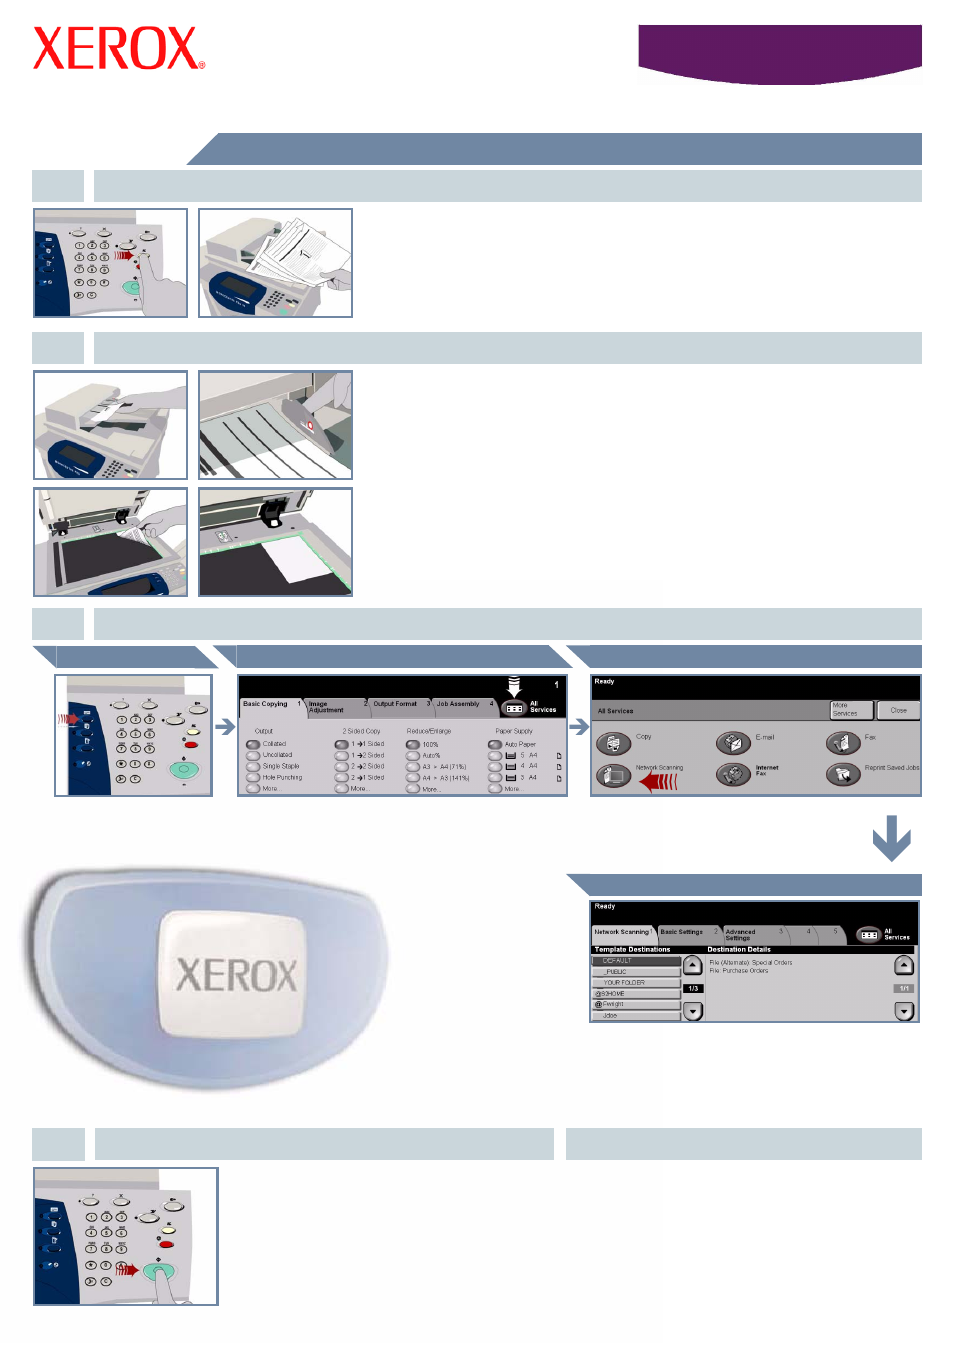 Xerox 5638 User Manual | Page 6 / 10 | Also for: 5632, 5675, 5655,  WorkCentre 5645, WorkCentre 5665, WorkCentre 5687